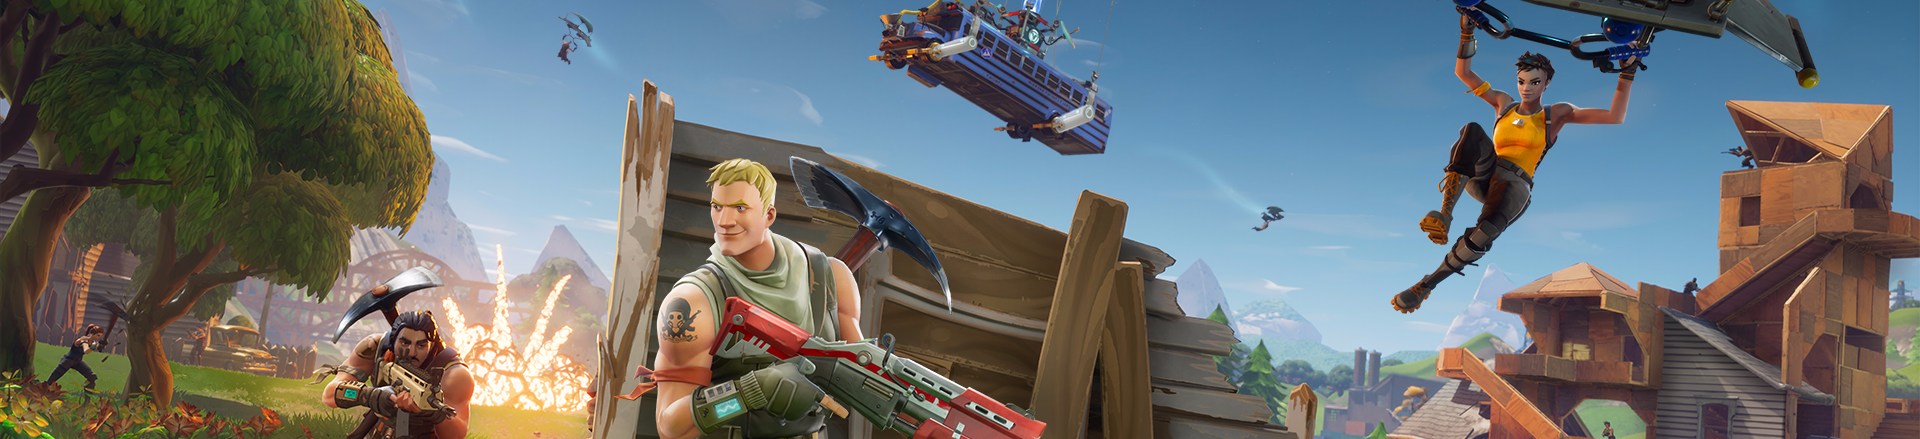 Battle Royale Gets Stats - 1.7.1 Patch Notes